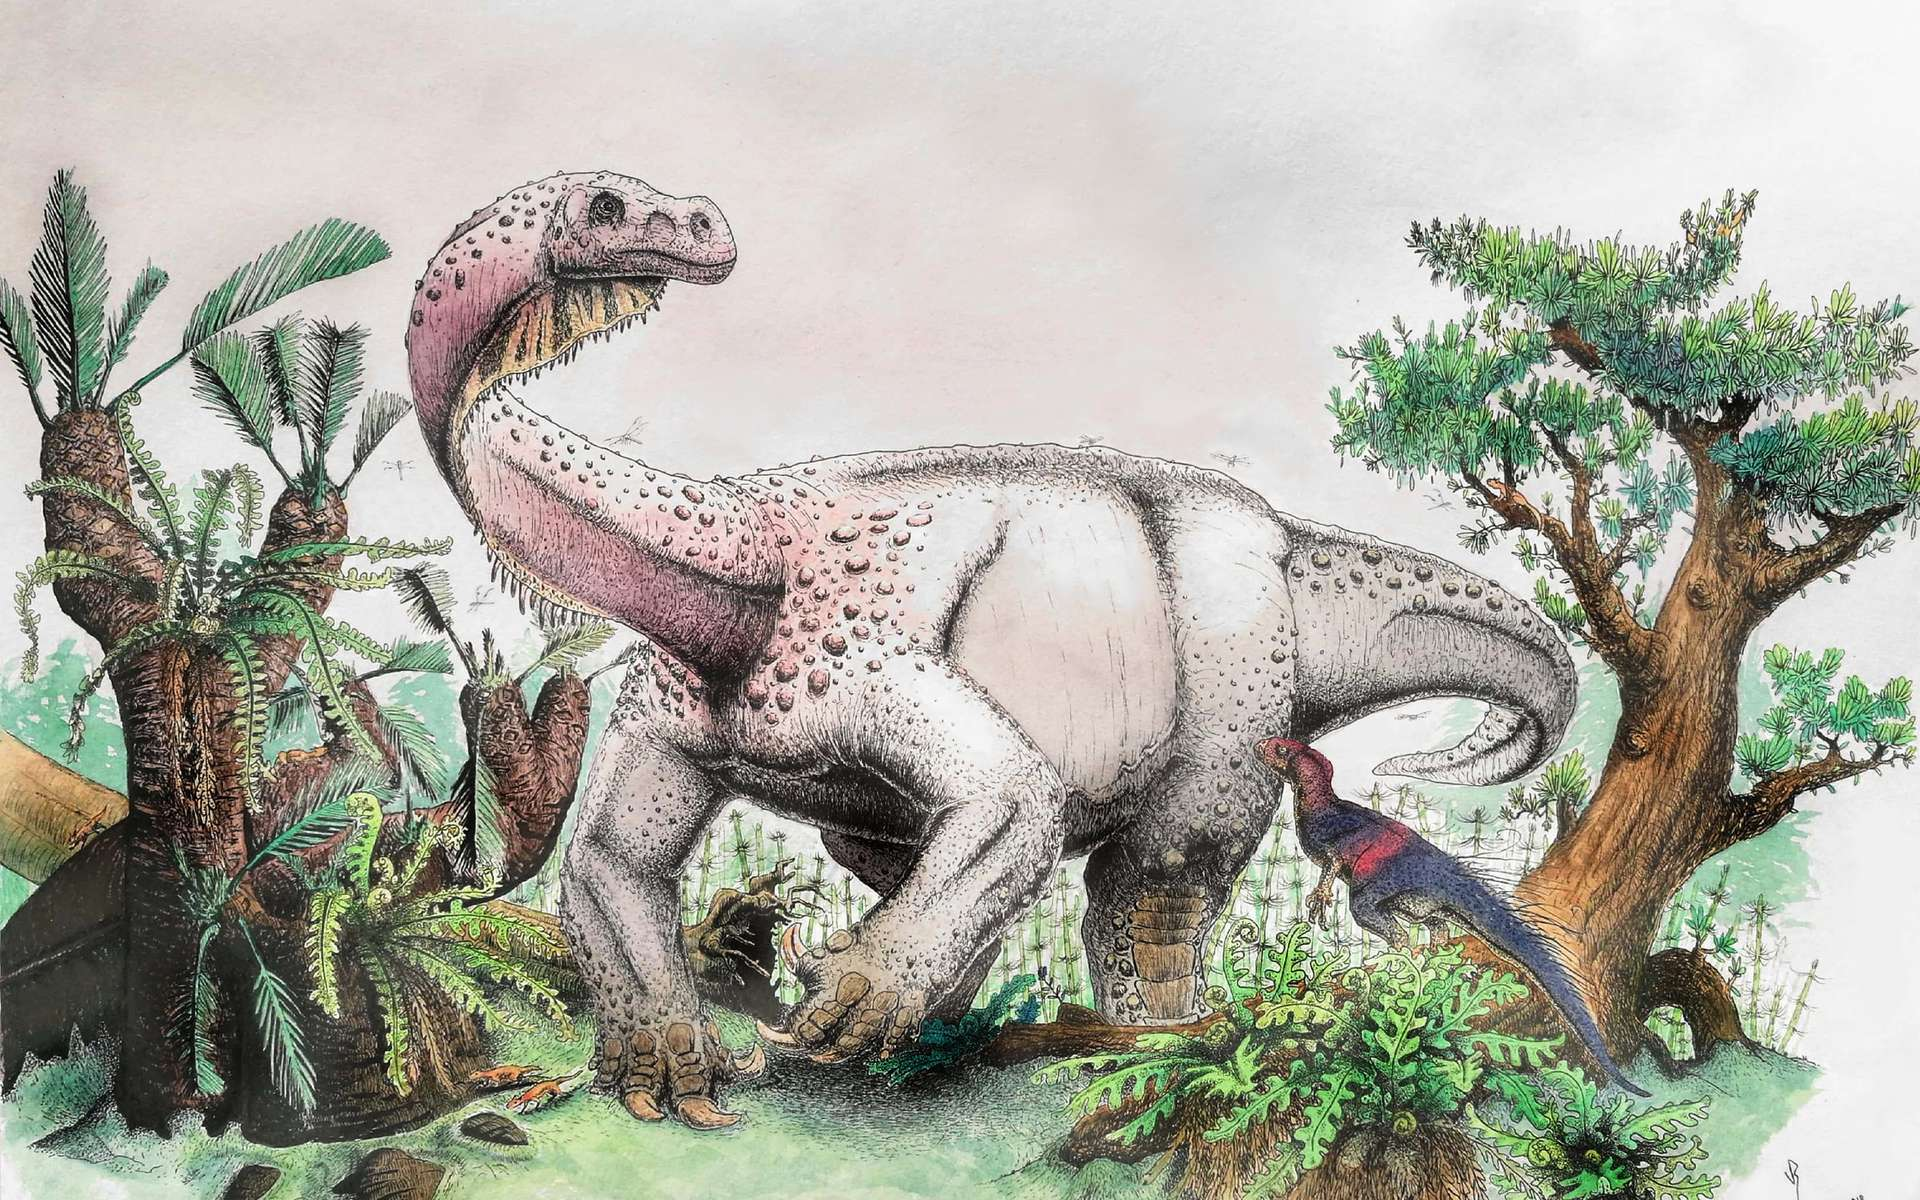 Le nouveau dinosaure découvert, Ledumahadi mafube, et son aspect probable reconstitué par un paléontologue paléoartiste. © Viktor Radermacher, University of the Witwatersrand